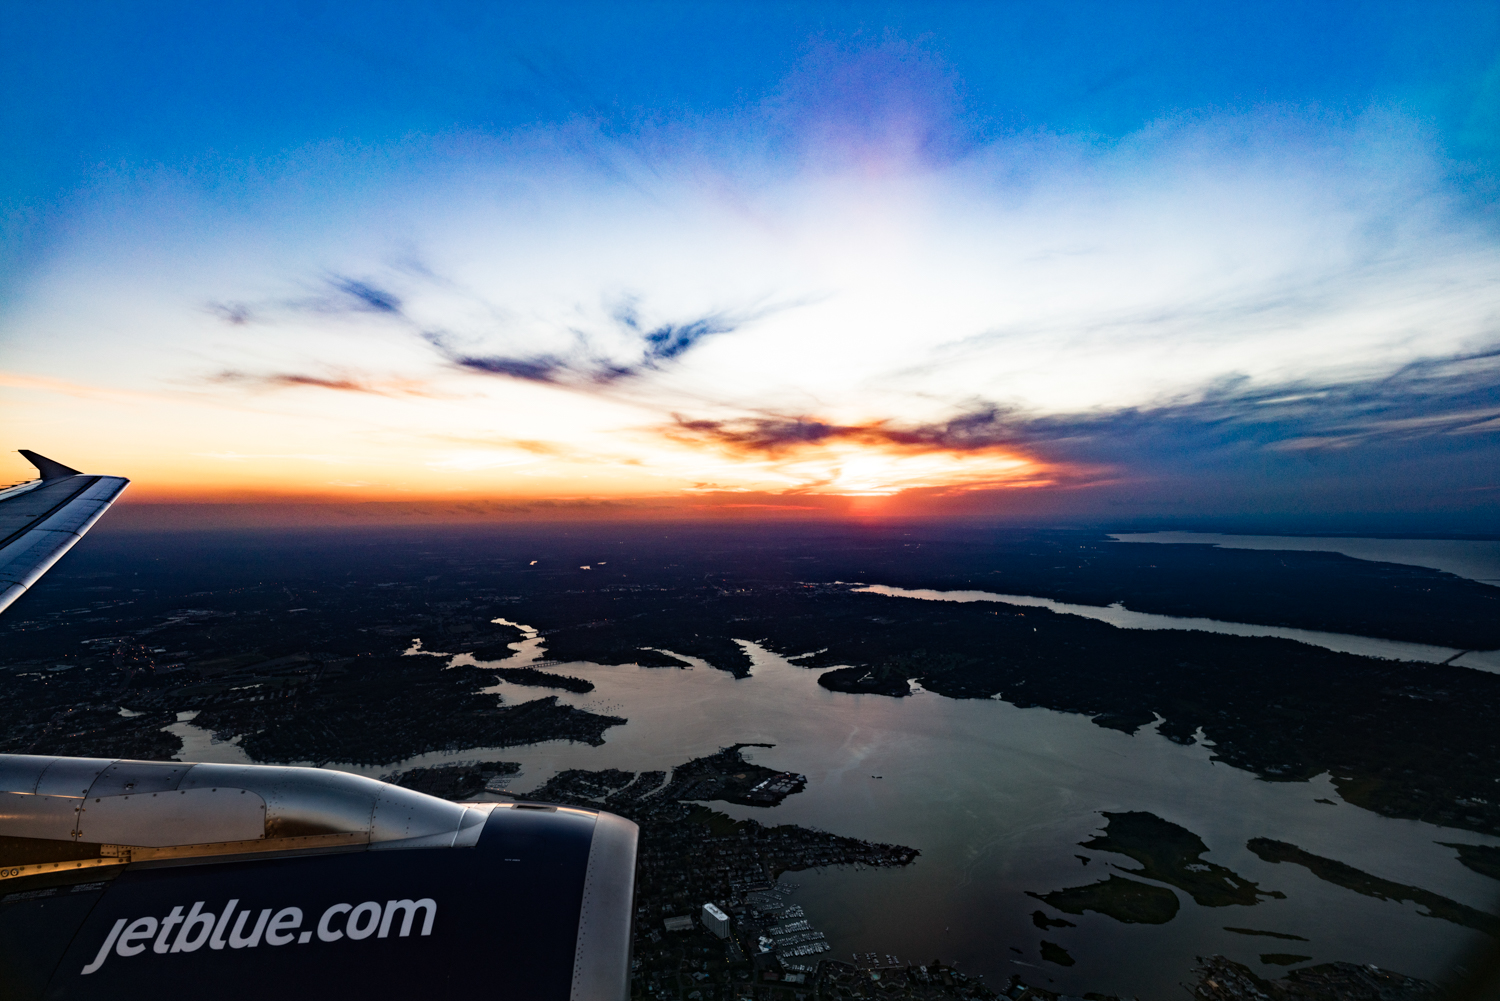 On the flight home. This was in no way endorsed by Jet Blue.  Sony A7RII, Zeiss Batis 18mm f/2.8 (iso400, f/4, 1/100s)